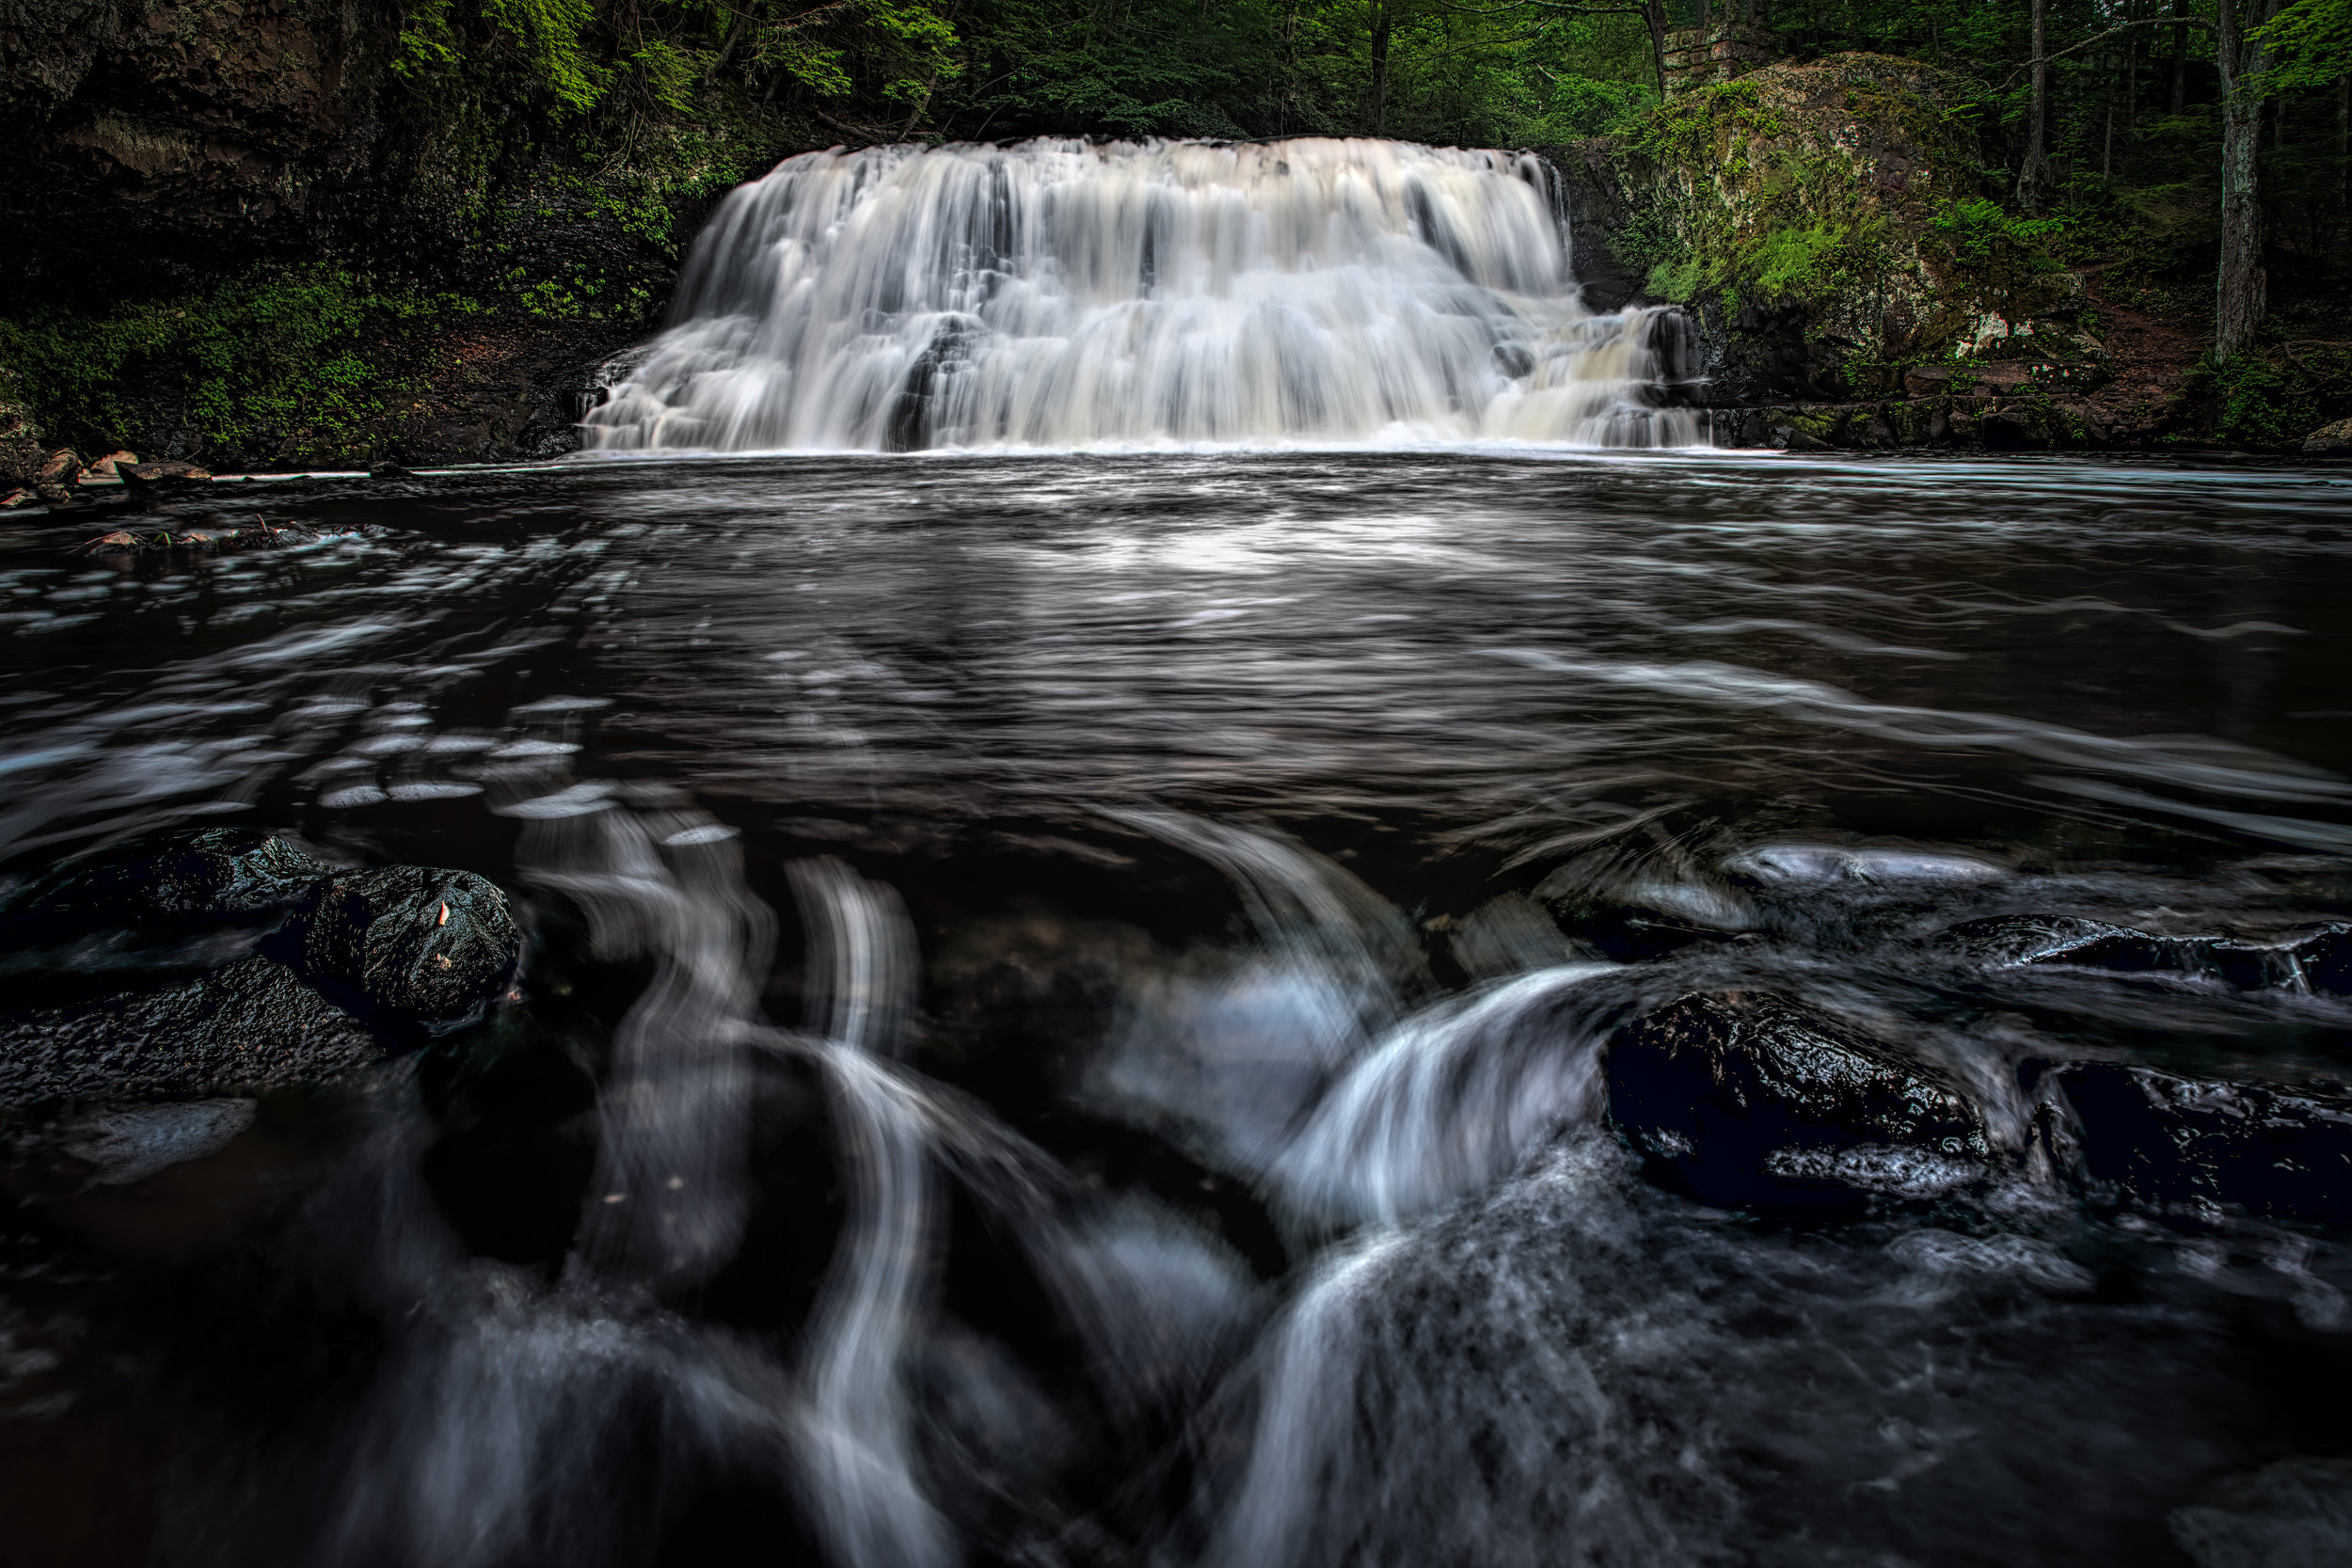 """The river that the falls are part of is the Coginchaug River. This first shot and subsequent images are of the """"Big Falls"""", the main attraction for many visitors."""